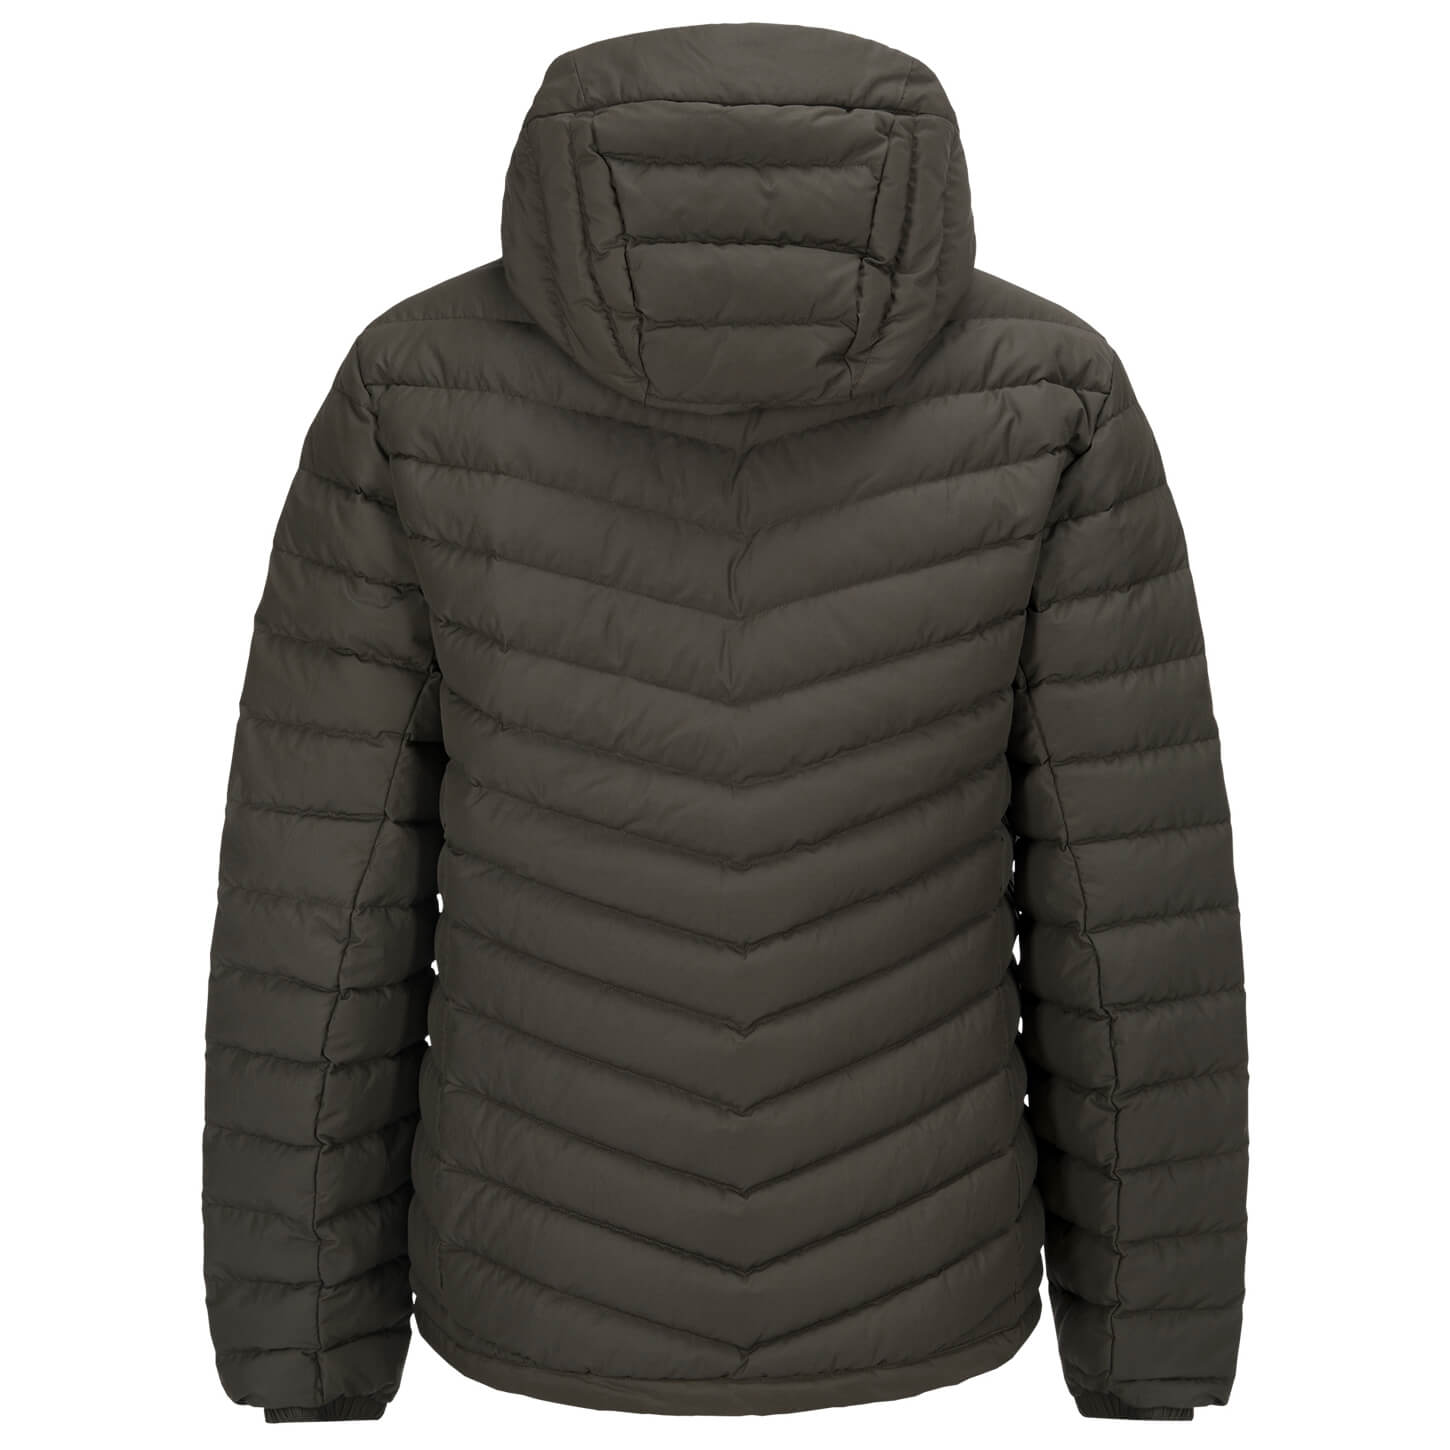 finest selection 8f795 b1b94 Peak Performance Frost Down Hood Cotton - Daunenjacke Herren ...